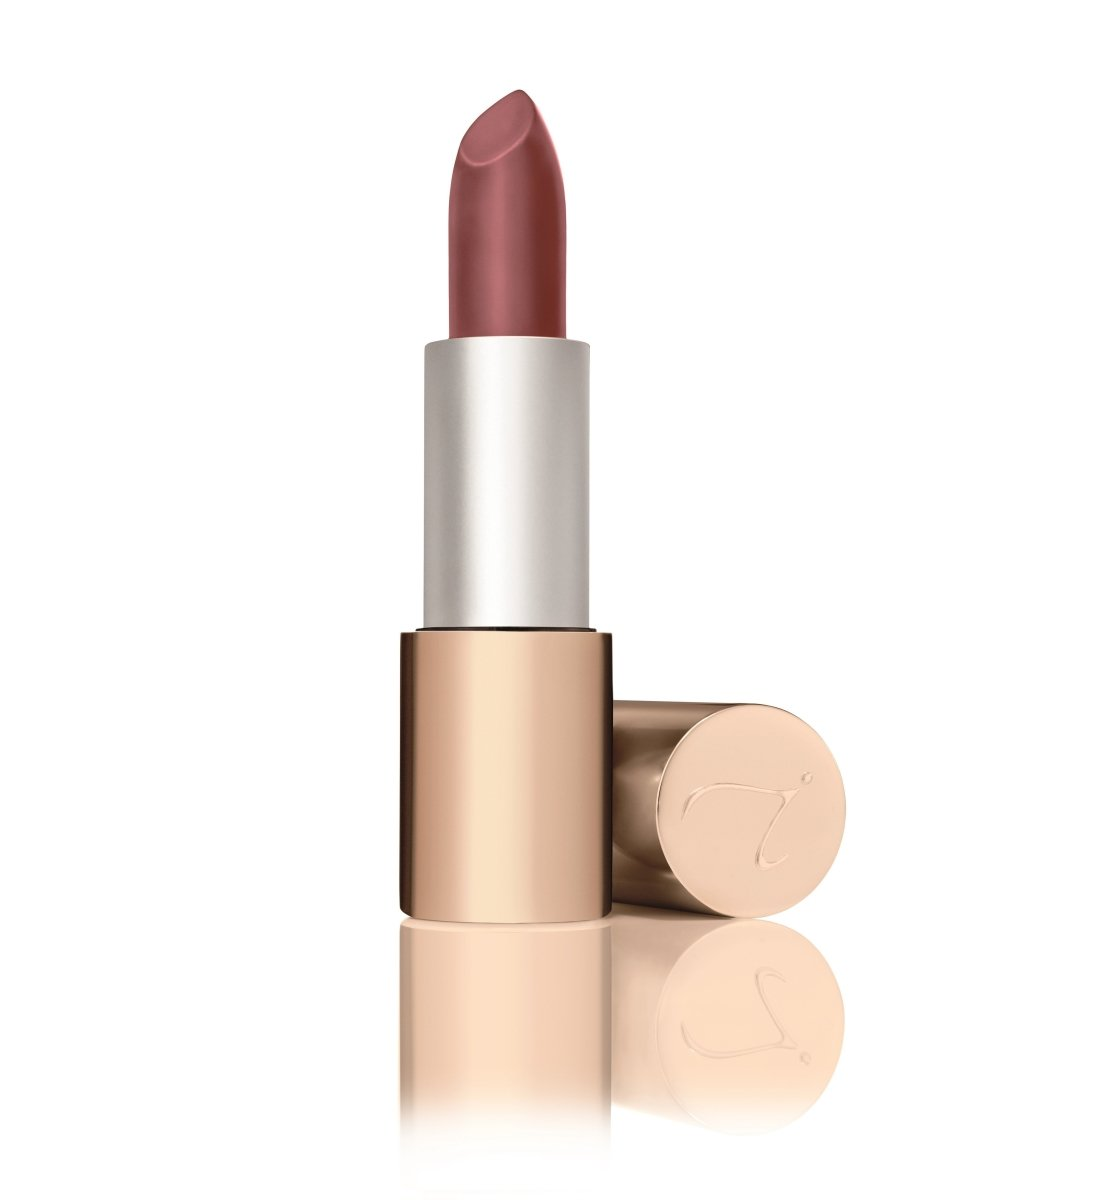 JANE IREDALE Triple Luxe Long Lasting Naturally Moist Lipstick™ 純素持久保濕子彈唇膏 [3.4g] - Susan - MINT Organics